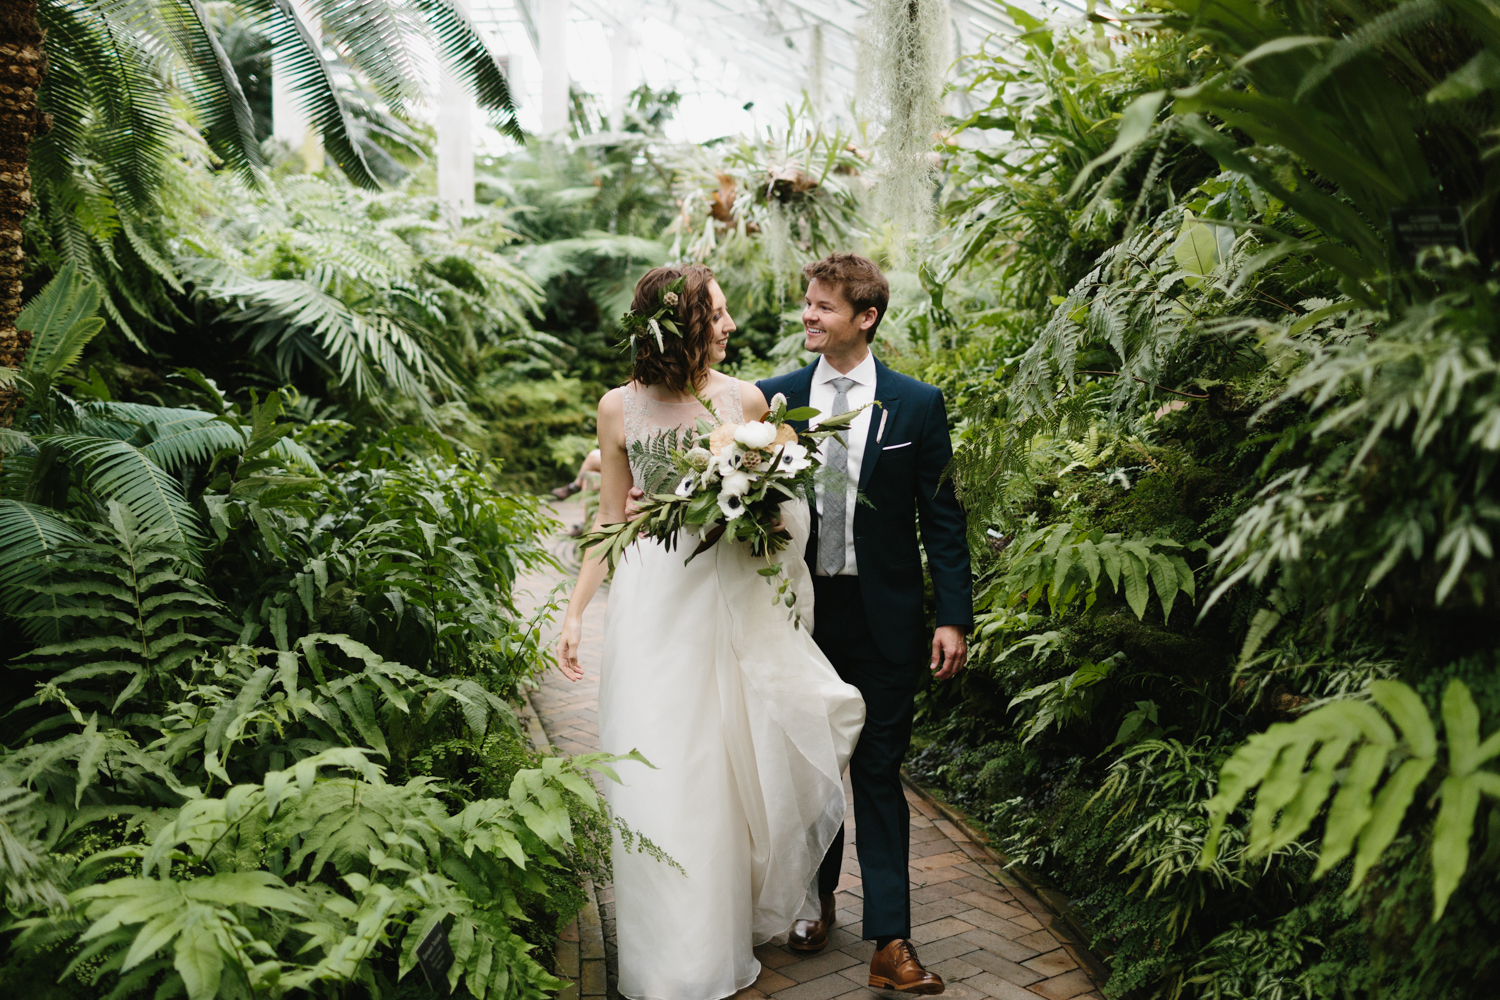 Chicago Garfield Park Conservatory Wedding by Northern Michigan Photographer Mae Stier-036.jpg